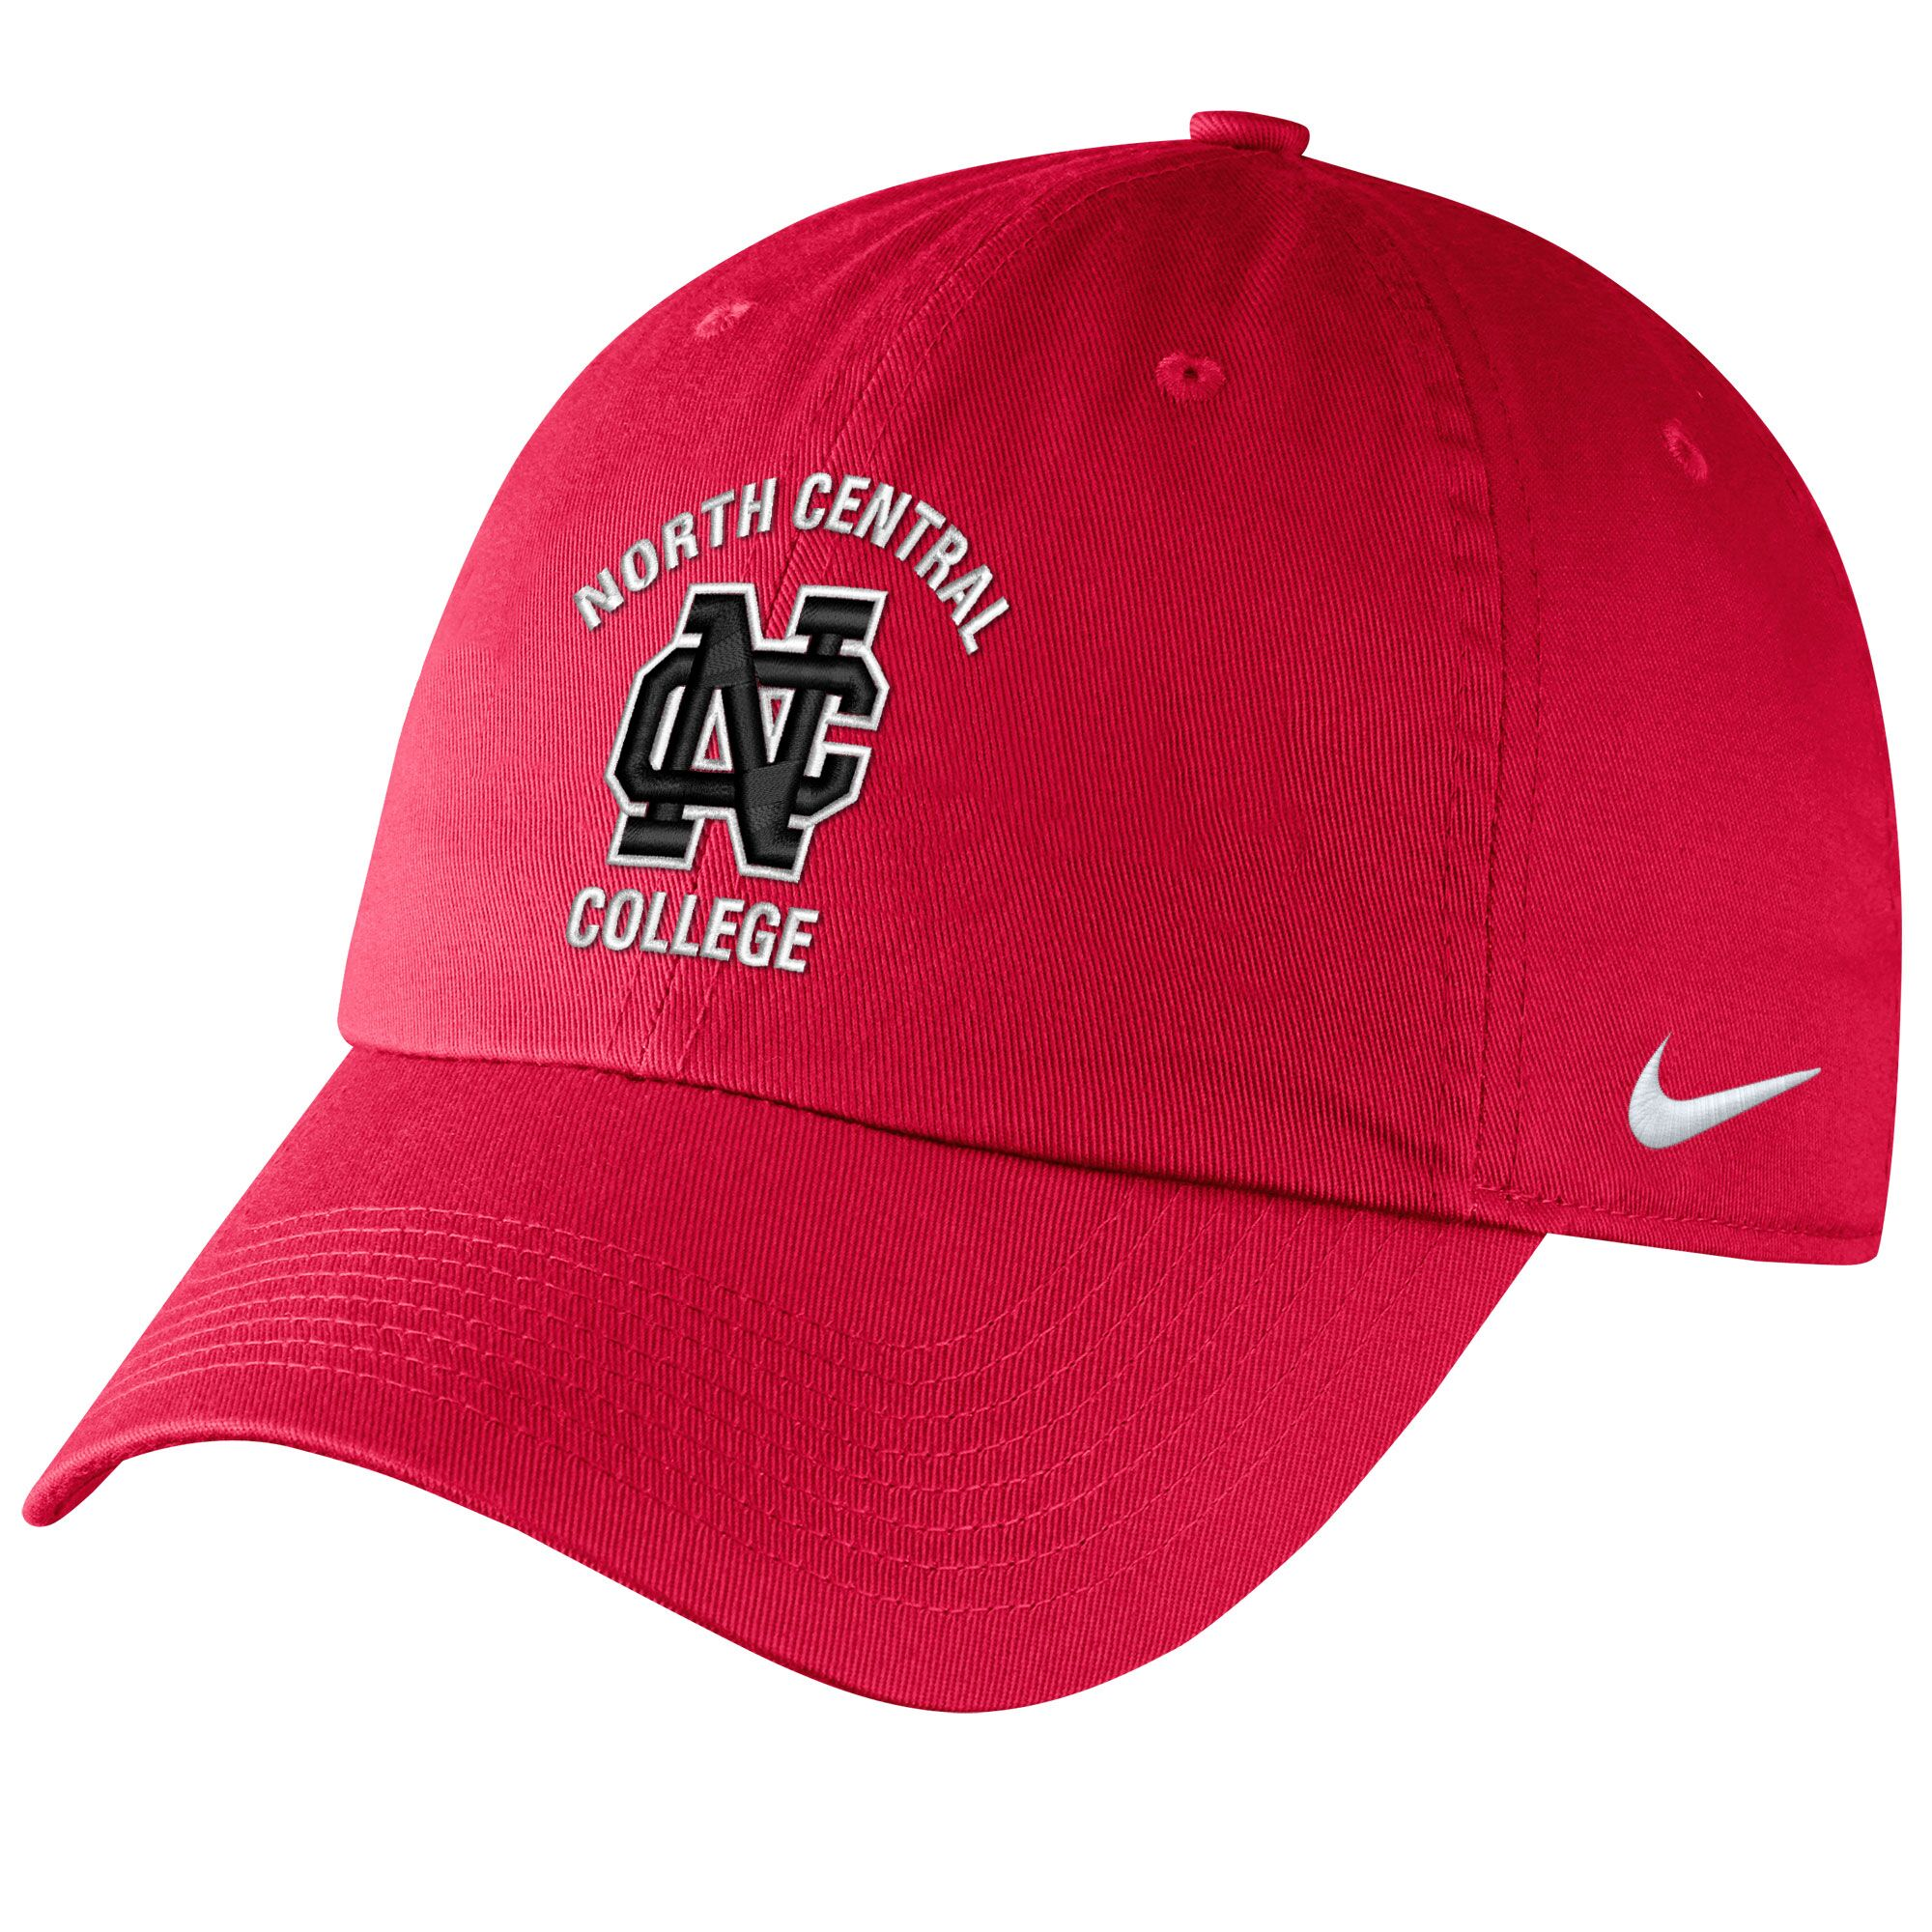 Alternative Image for the Nike Campus Cap product